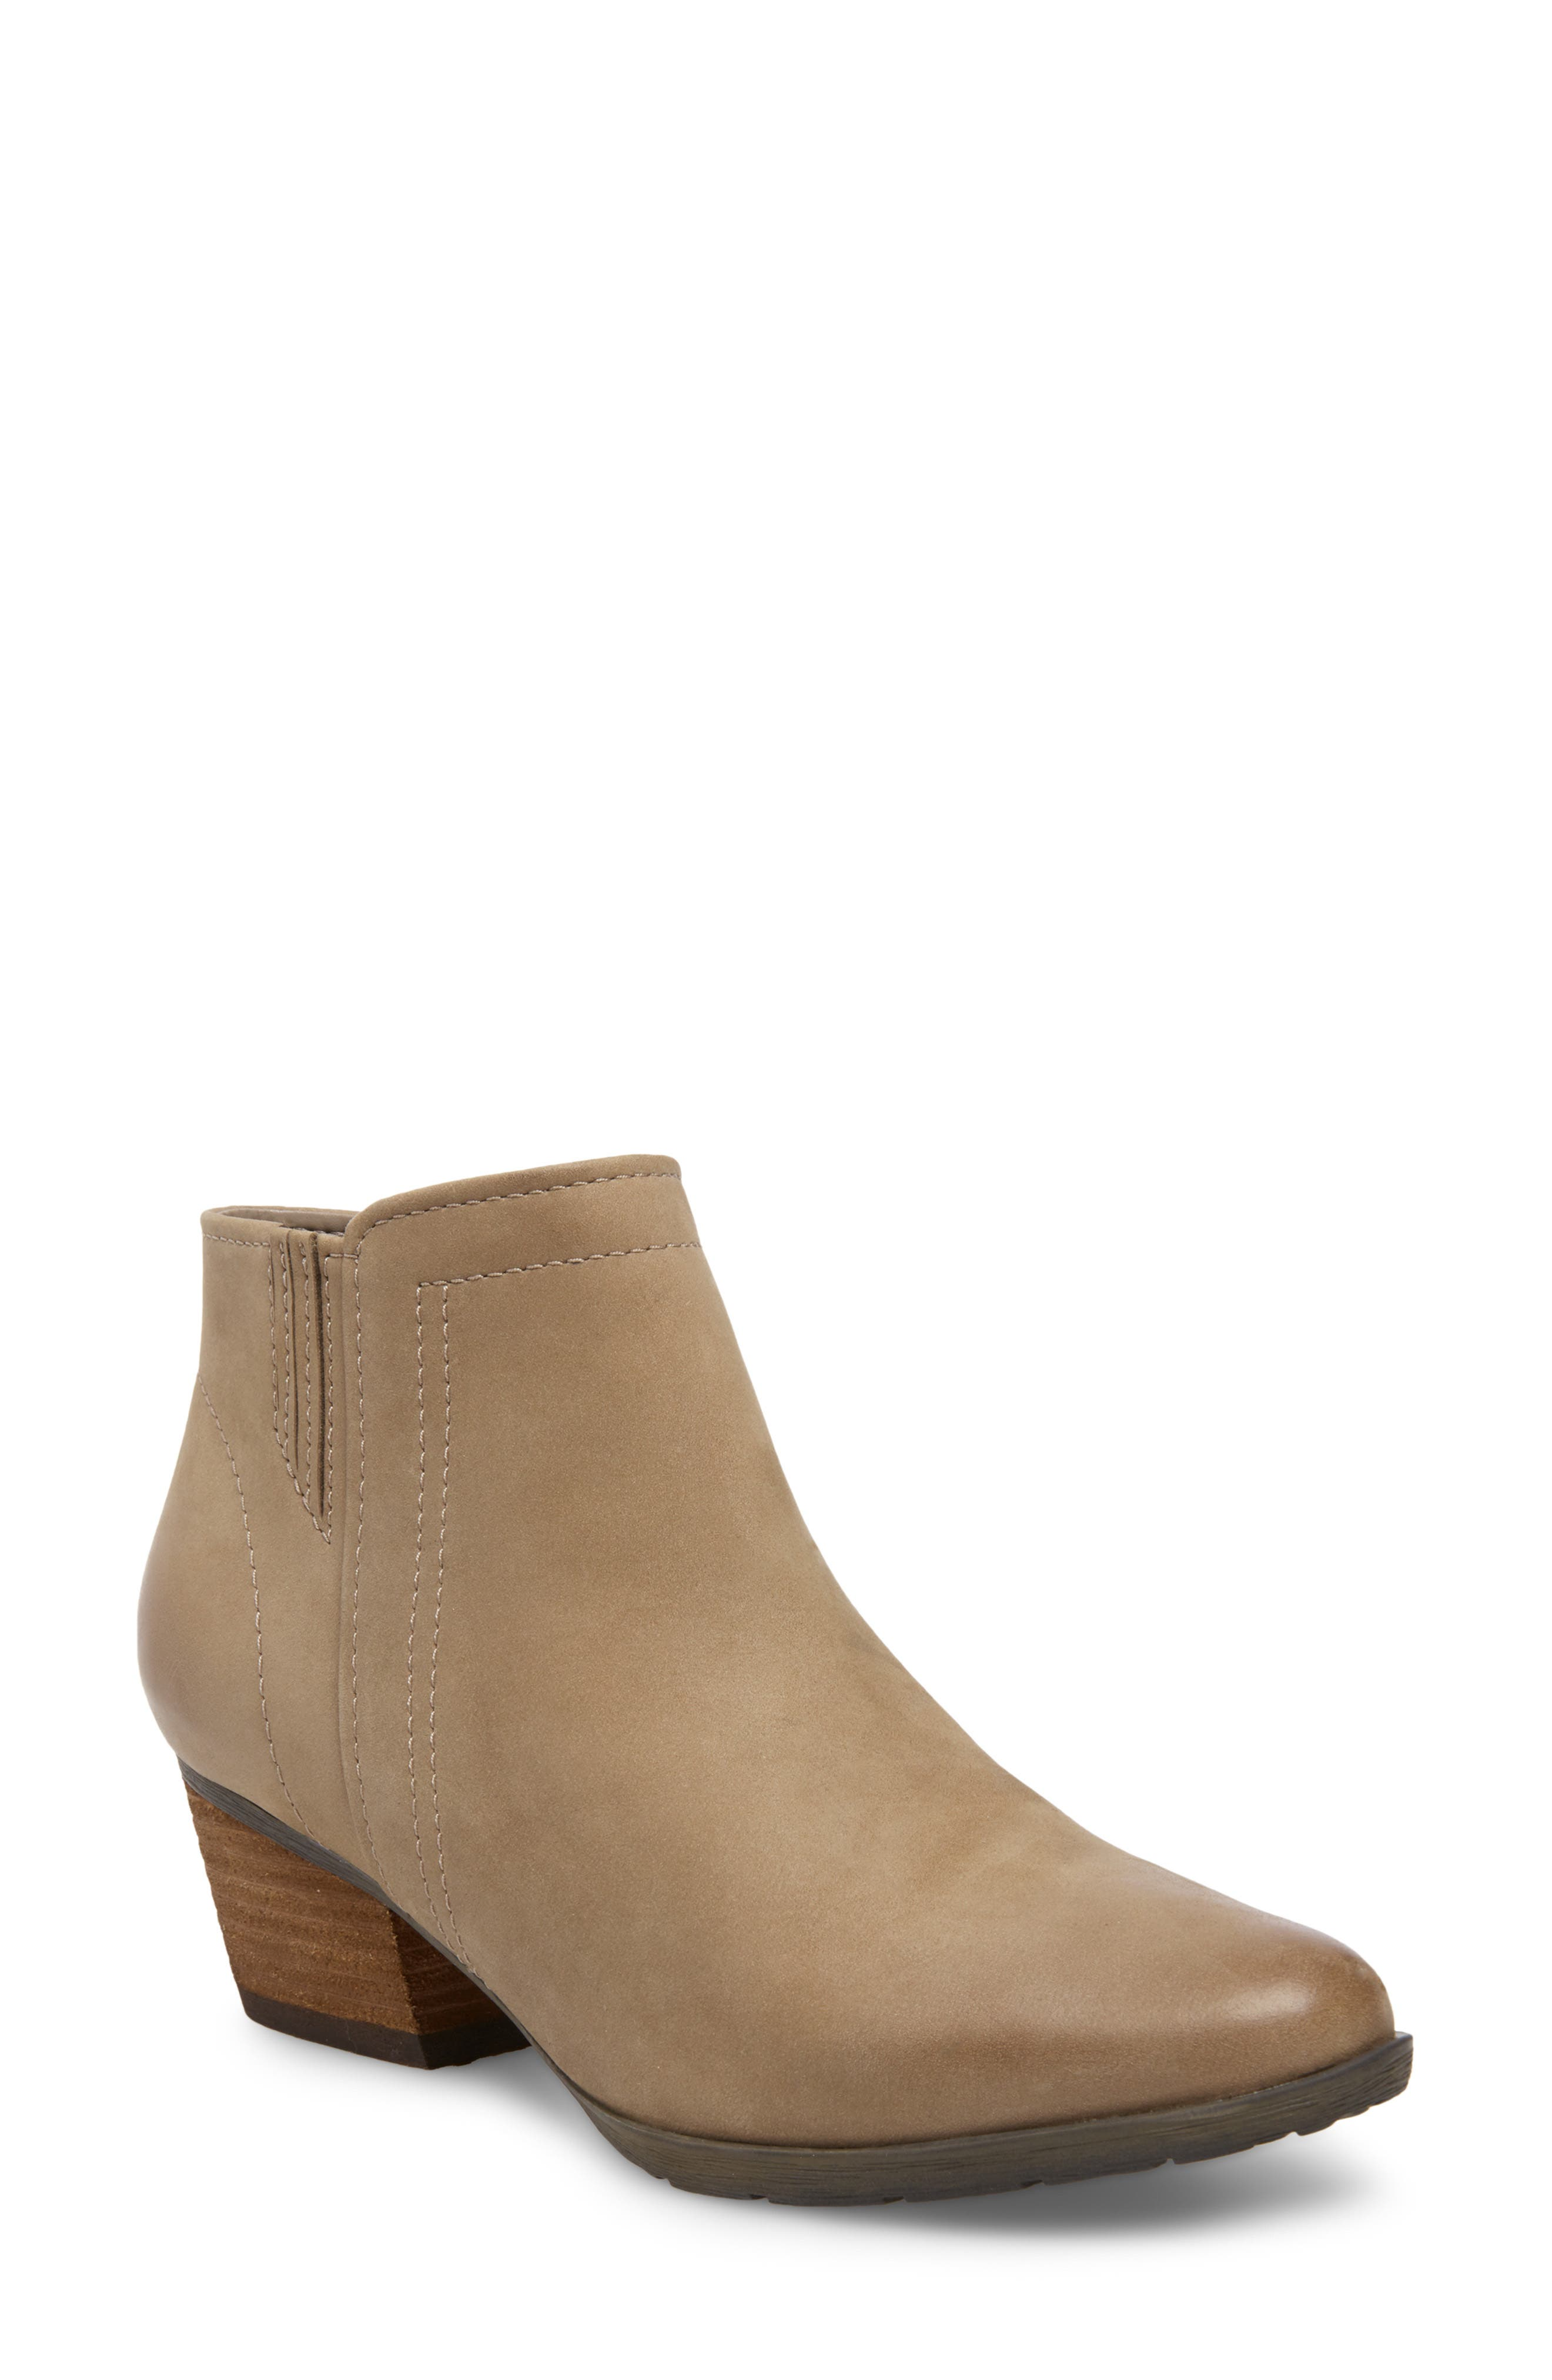 'Valli' Waterproof  Bootie,                         Main,                         color, MUSHROOM NUBUCK